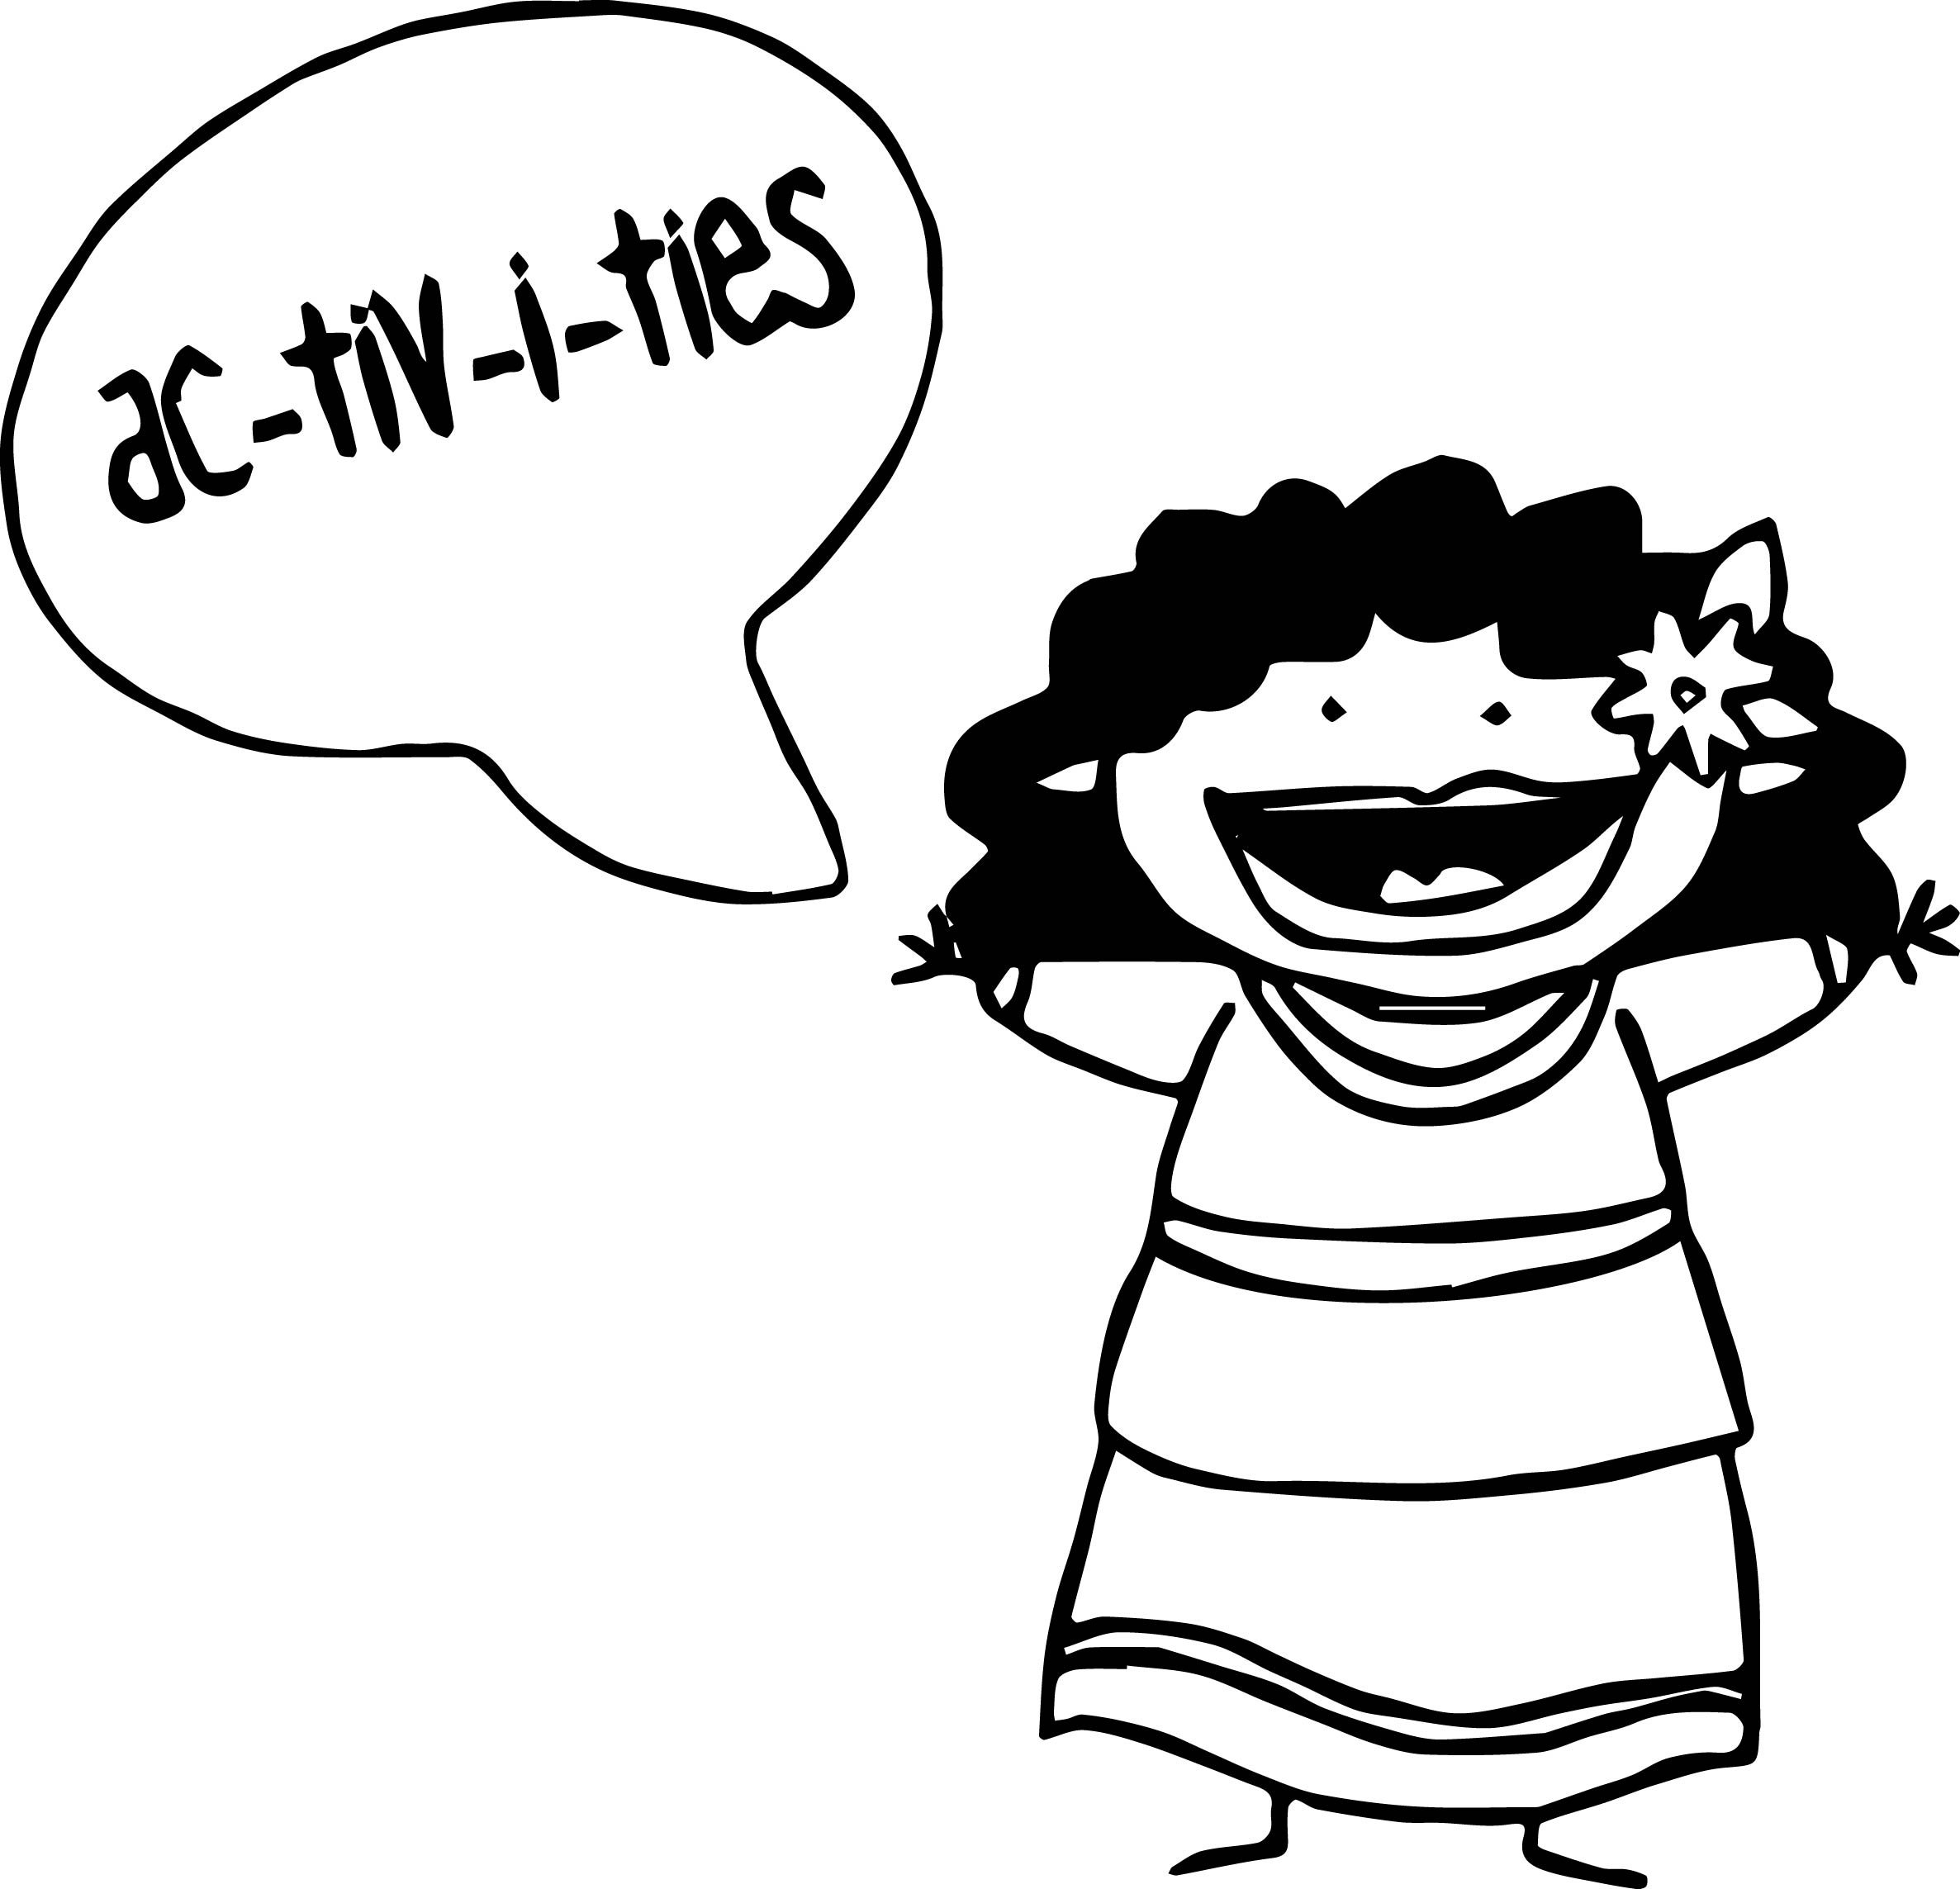 Syllable Graphic Activity Coloring Page